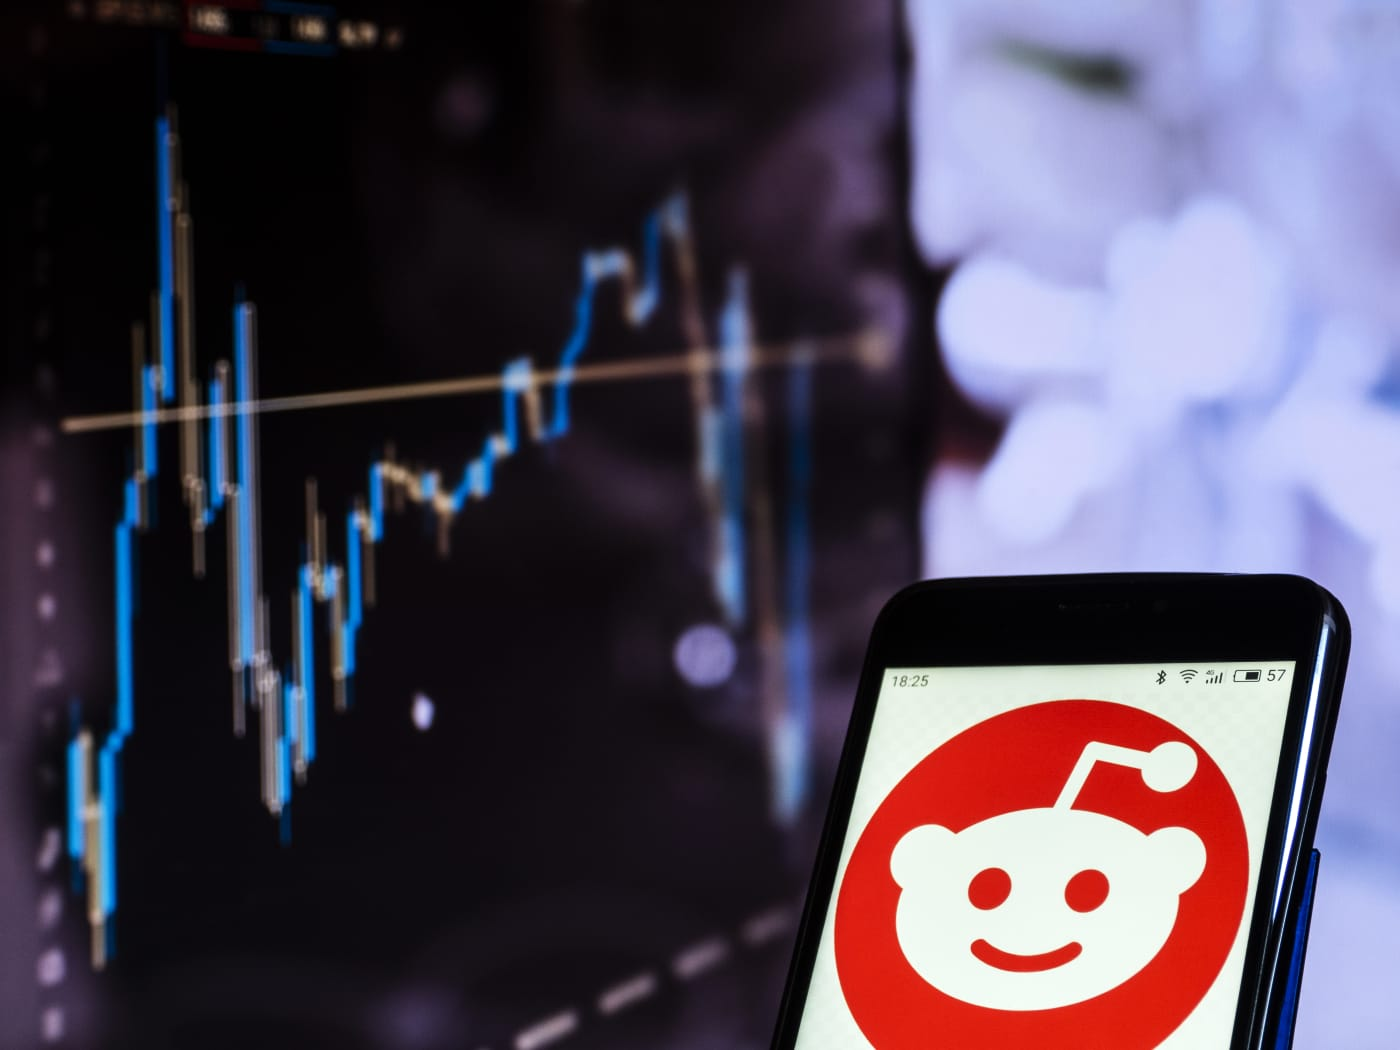 The Reddit logo on a phone screen, in front of a computer screen with a graph on it.